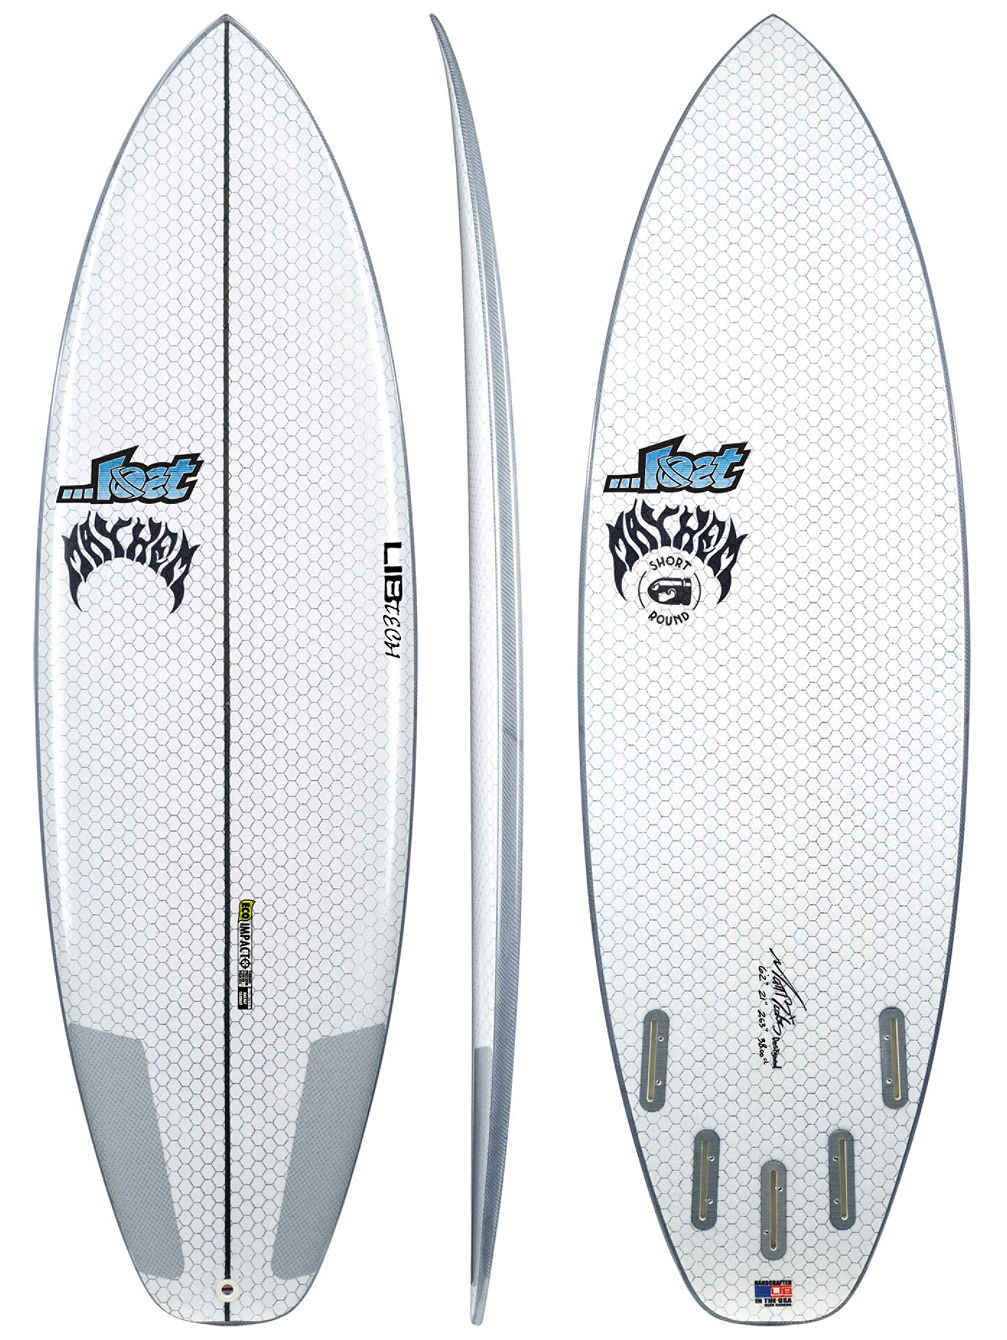 X Lost Short Round 6'2 Surfboard